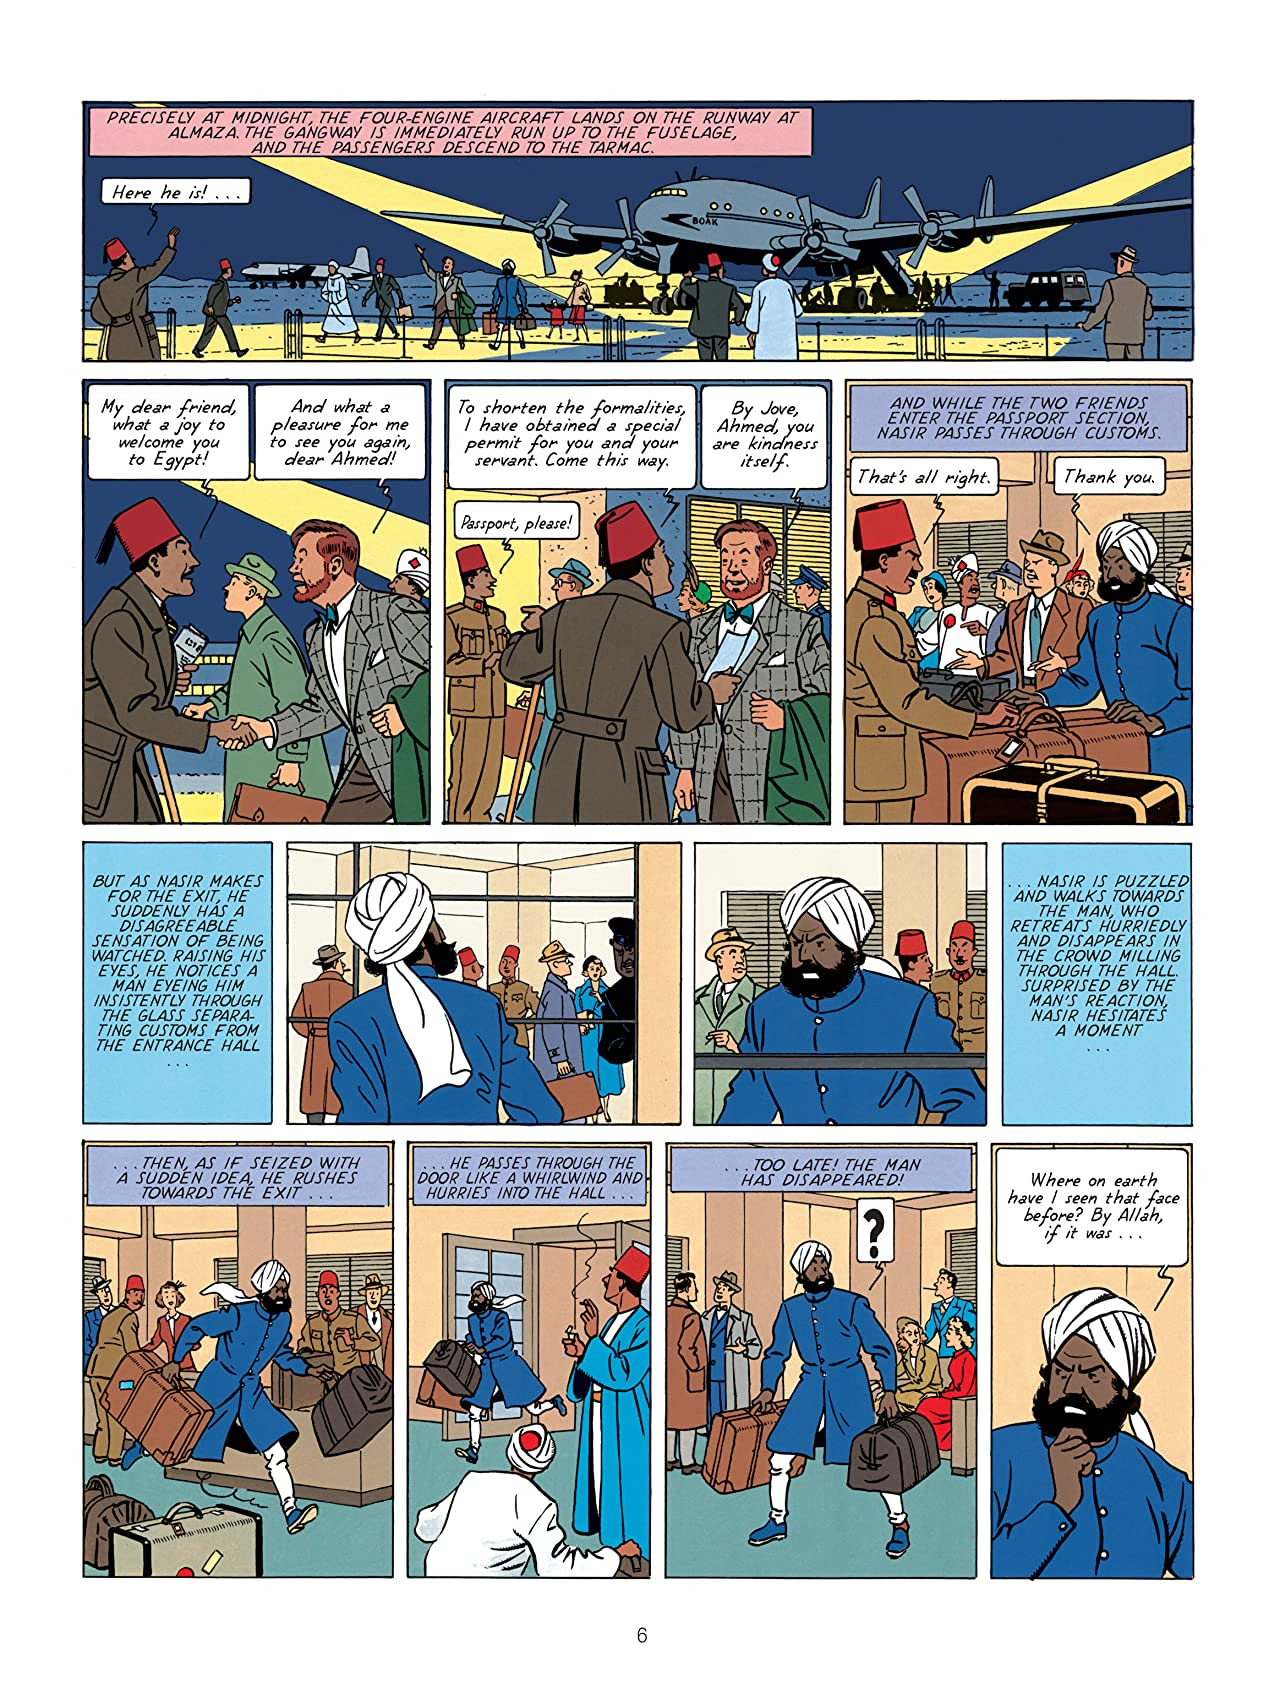 Blake & Mortimer Tome 2: The Mystery of the Great Pyramid (part 1)